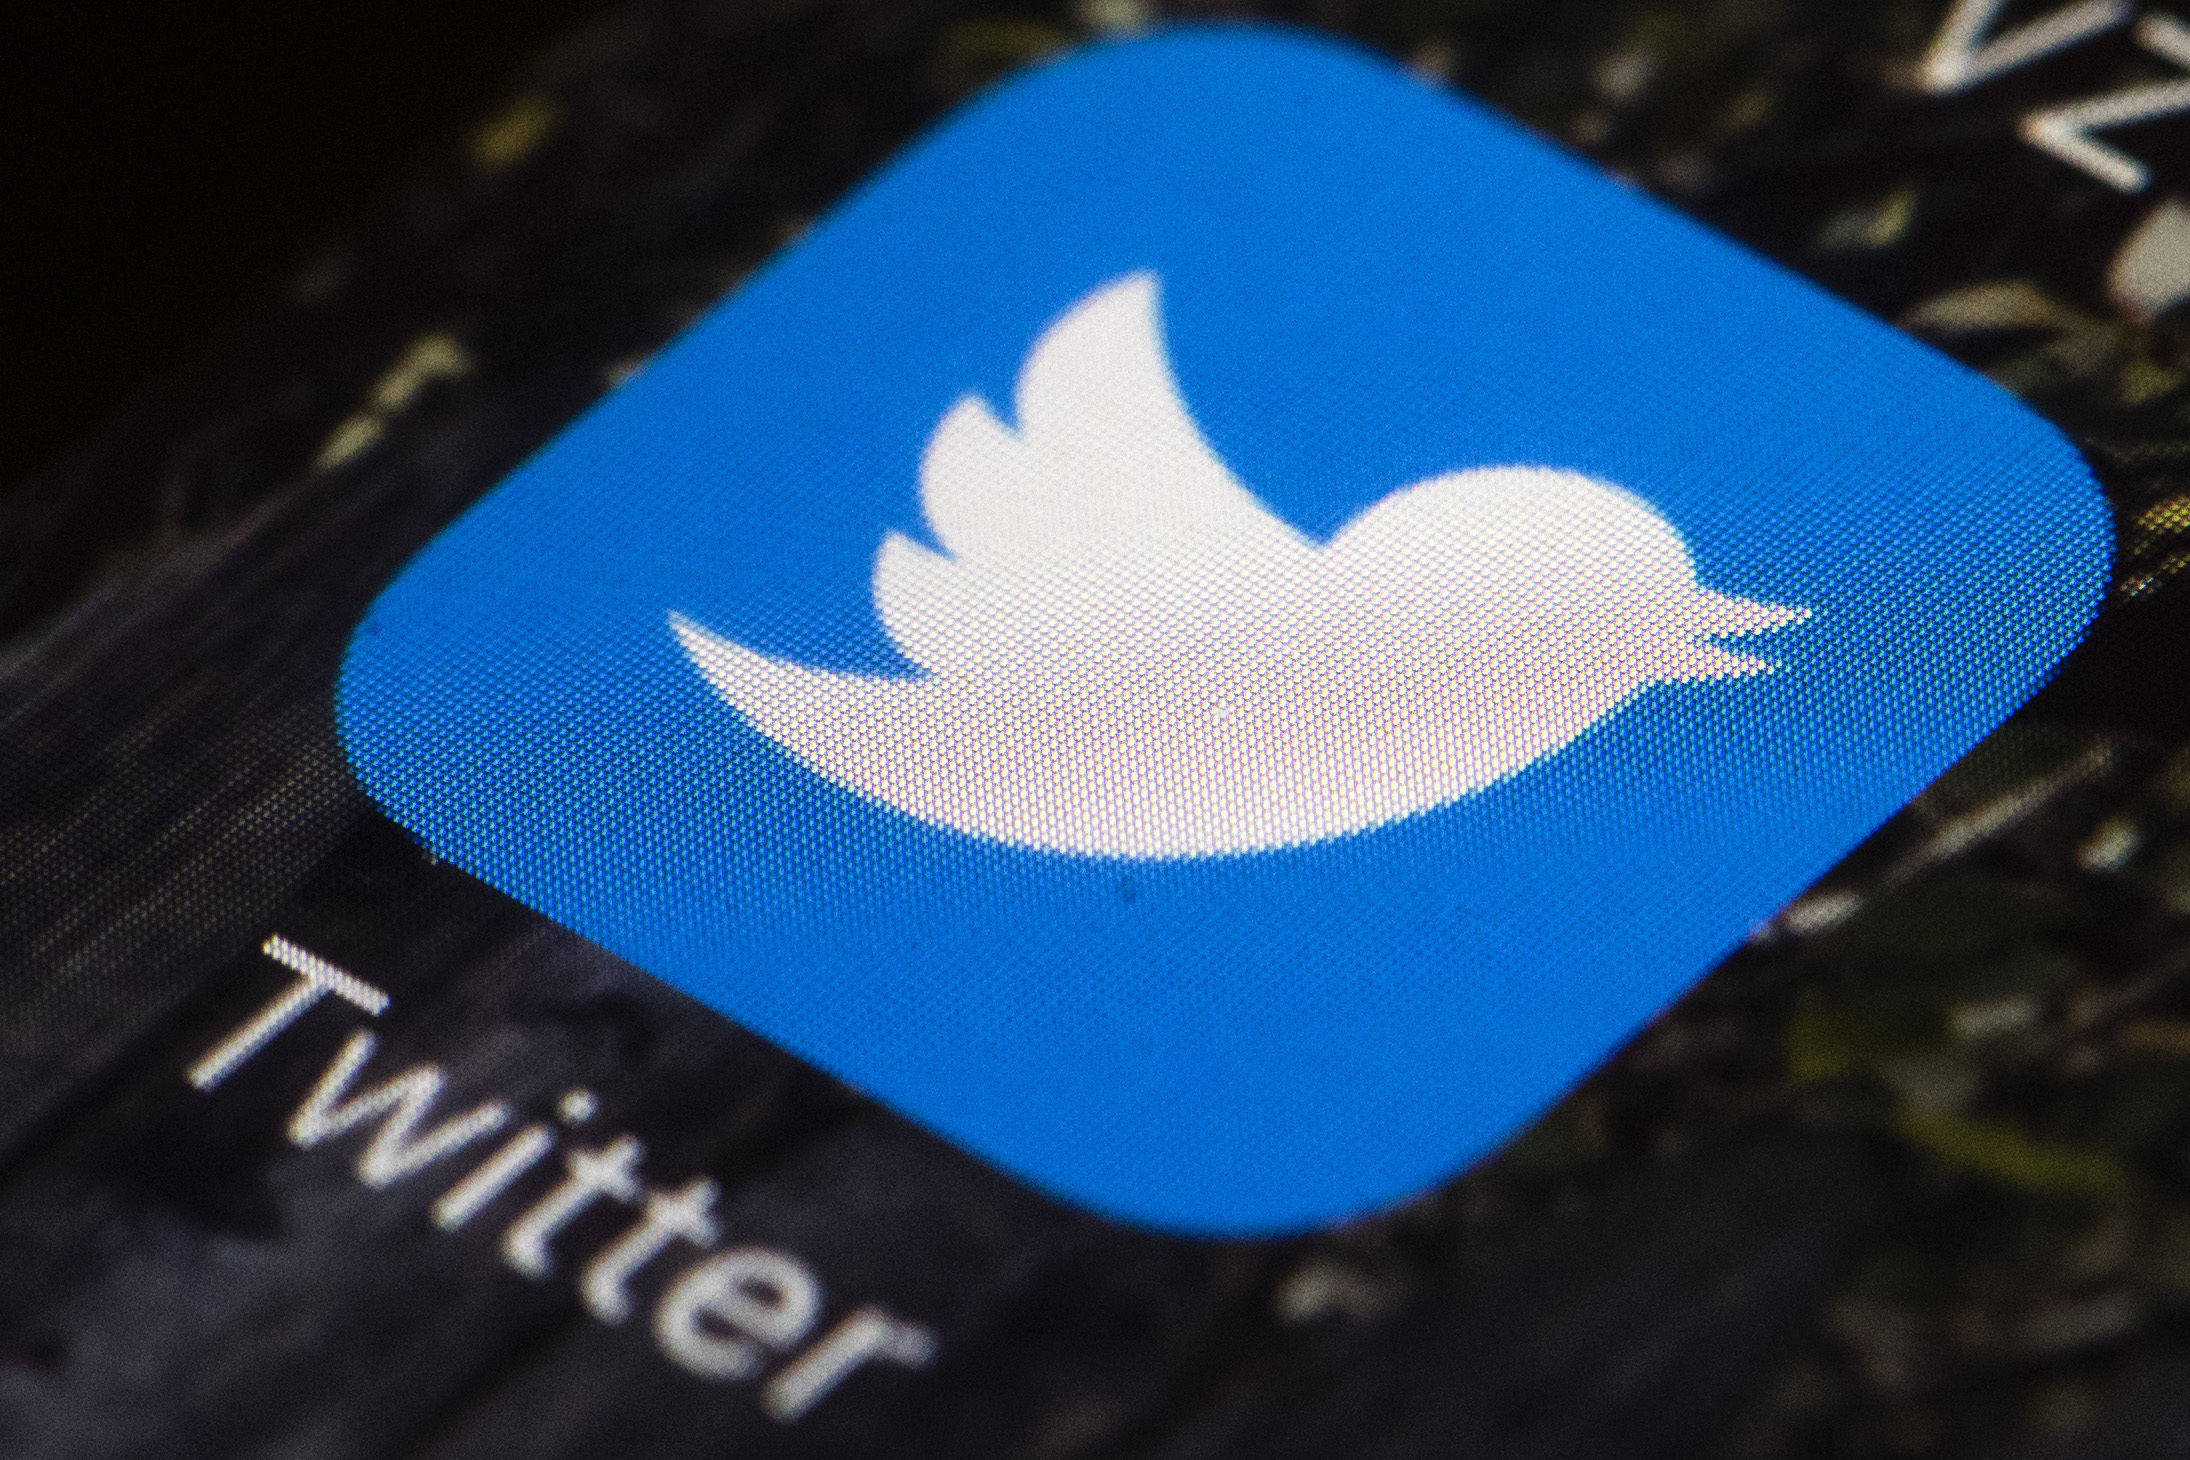 FILE - This April 26, 2017, file photo shows the Twitter app icon on a mobile phone in Philadelphia. According to a study released Jan. 24, 2019, a tiny fraction of Twitter users spread the vast majority of fake news in 2016, with conservatives and o...